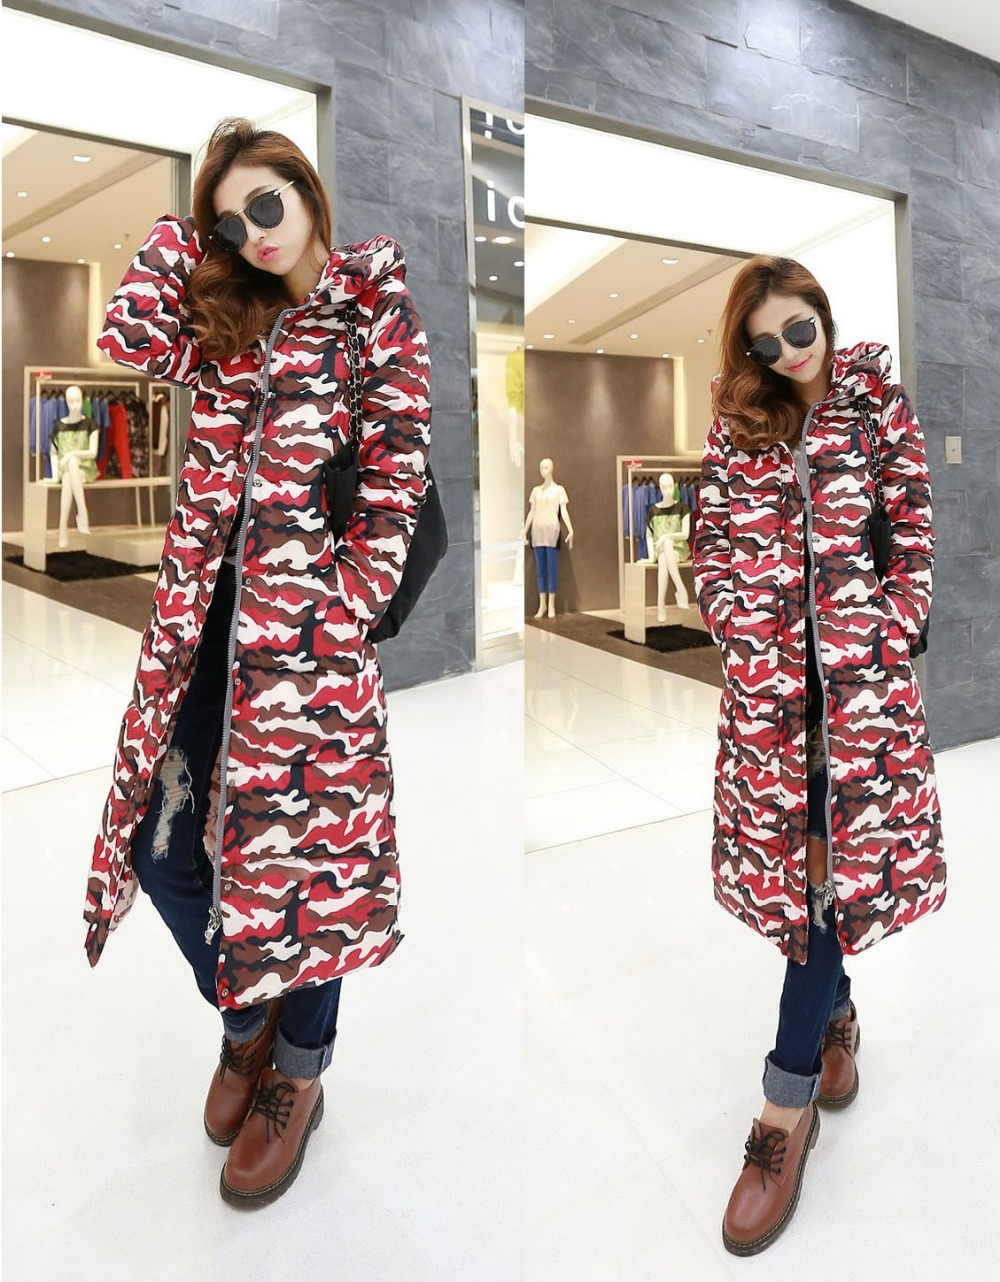 Long Women's Winter Jacket Fashion Thick Wadded Jackets Female Camouflage Coat Slim Outerwear Hooded Parka Plus Size Coat C882 цены онлайн